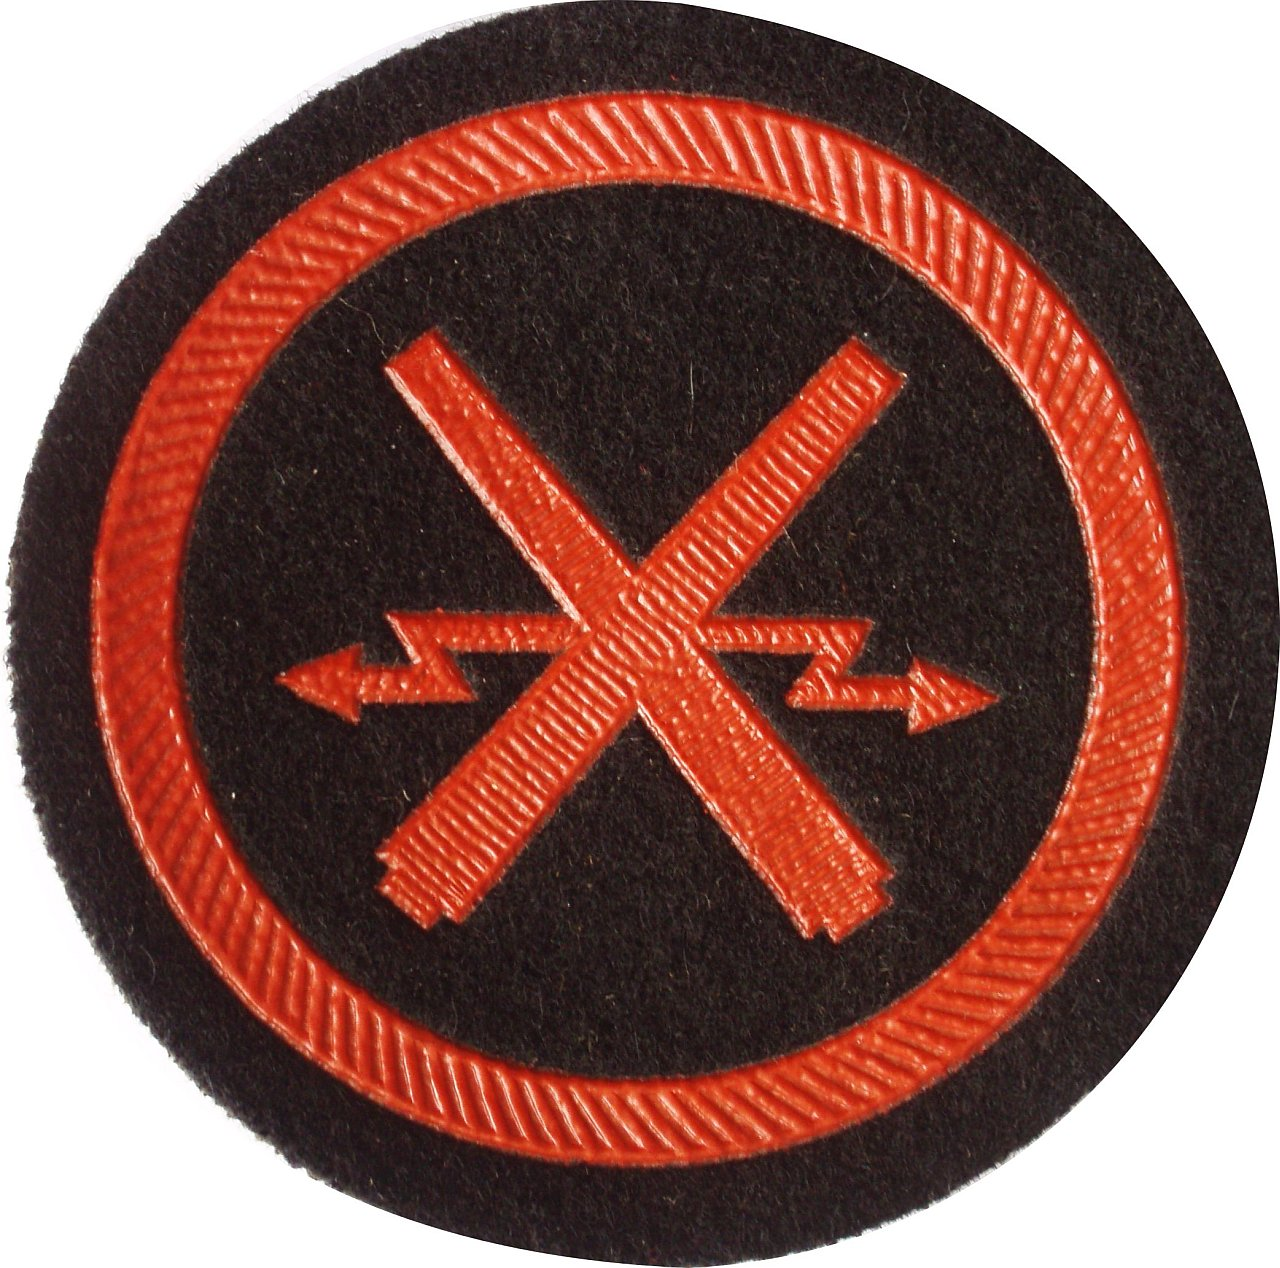 soviet army marine artilery sleeve patch